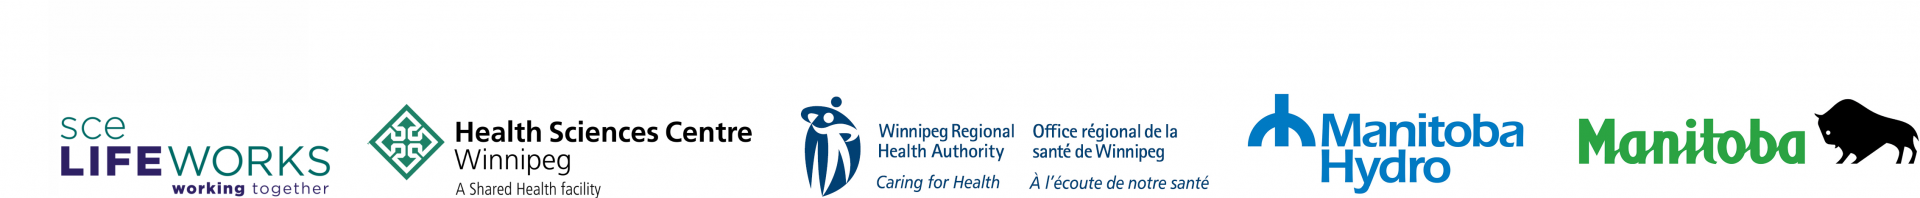 Logos for the following organizations: SCE Lifeworks, Health Sciences Centre, Winnipeg Regional Health Authority, Manitoba Hydro, and the Government of Manitoba.